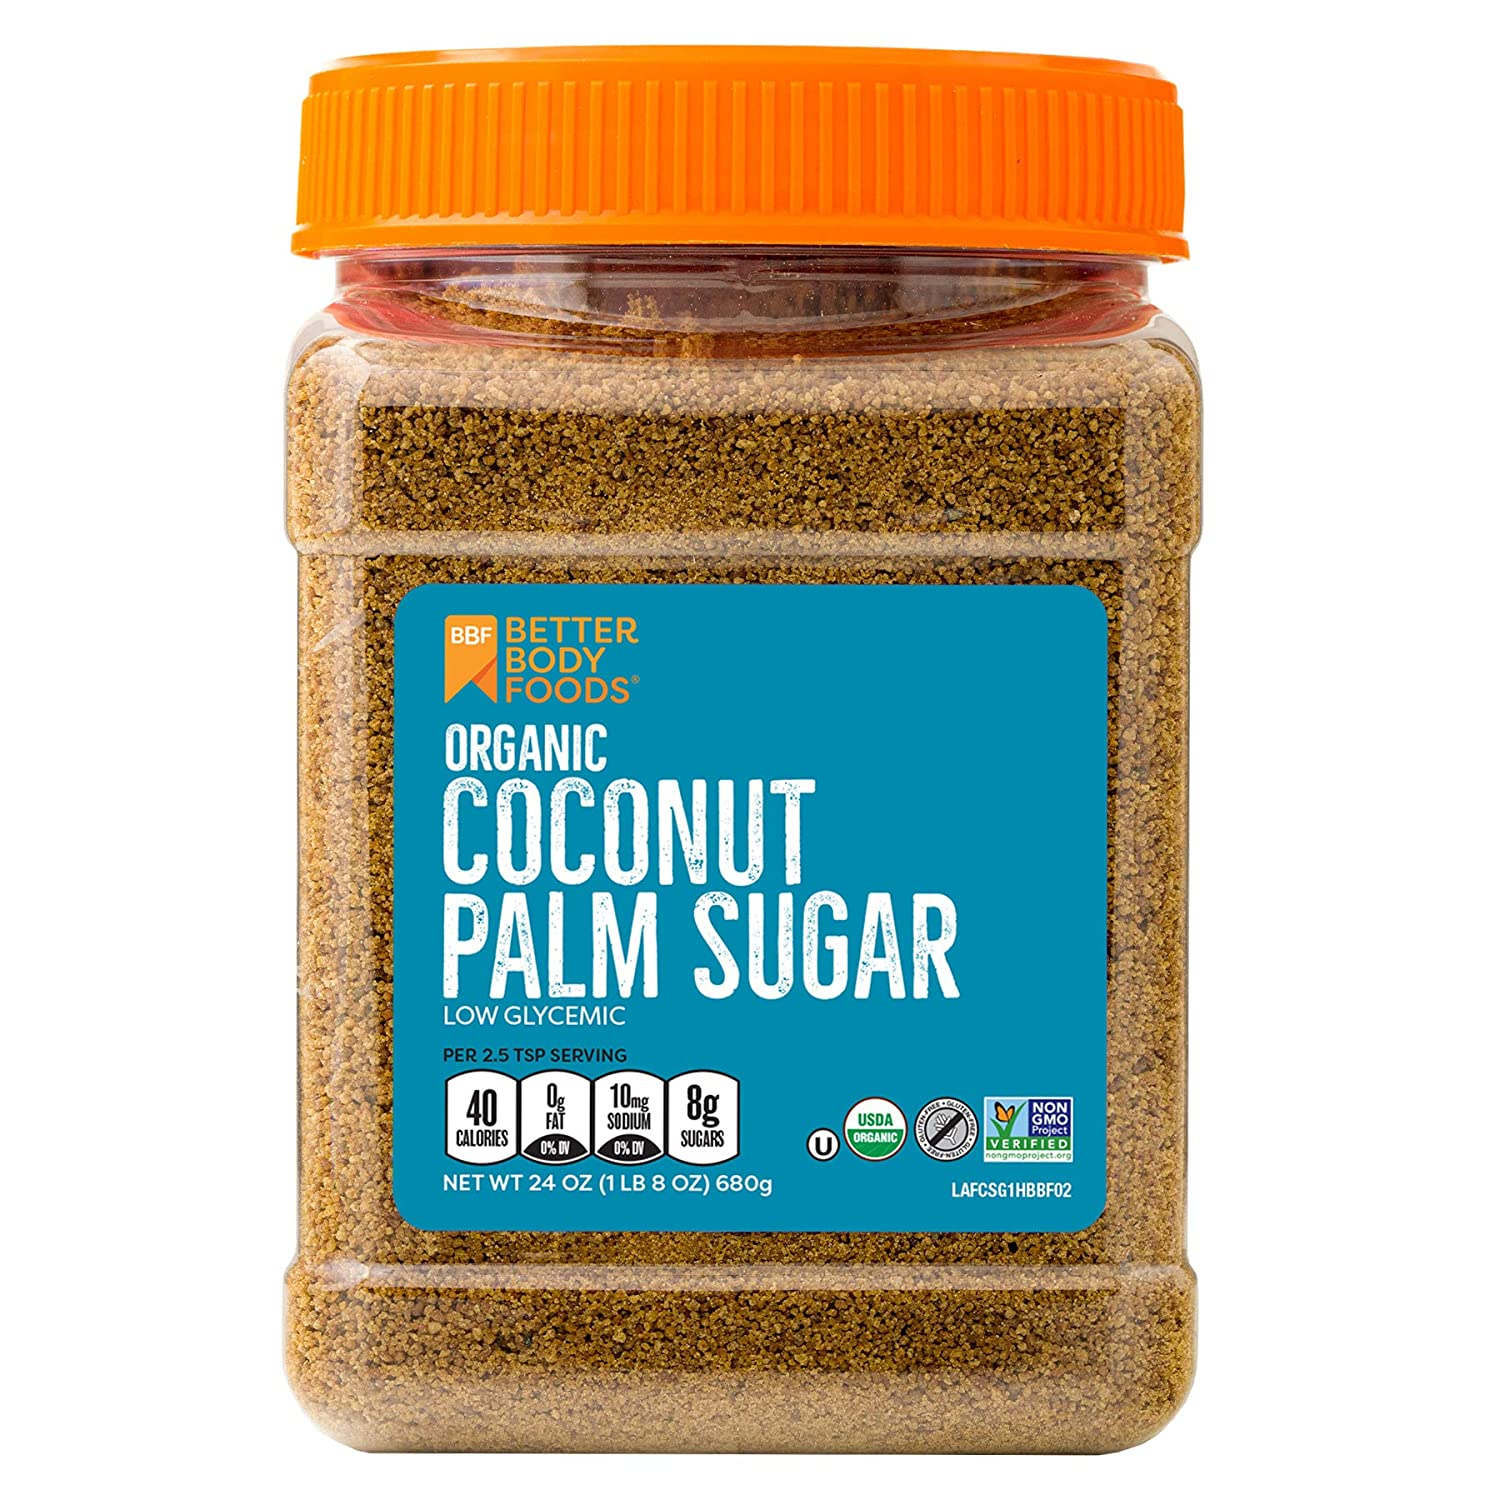 Organic Coconut Palm Sugar Gluten Free Non Gmo Sweetener Substitute 24 Ounce Amazon Com Grocery Gourmet Food